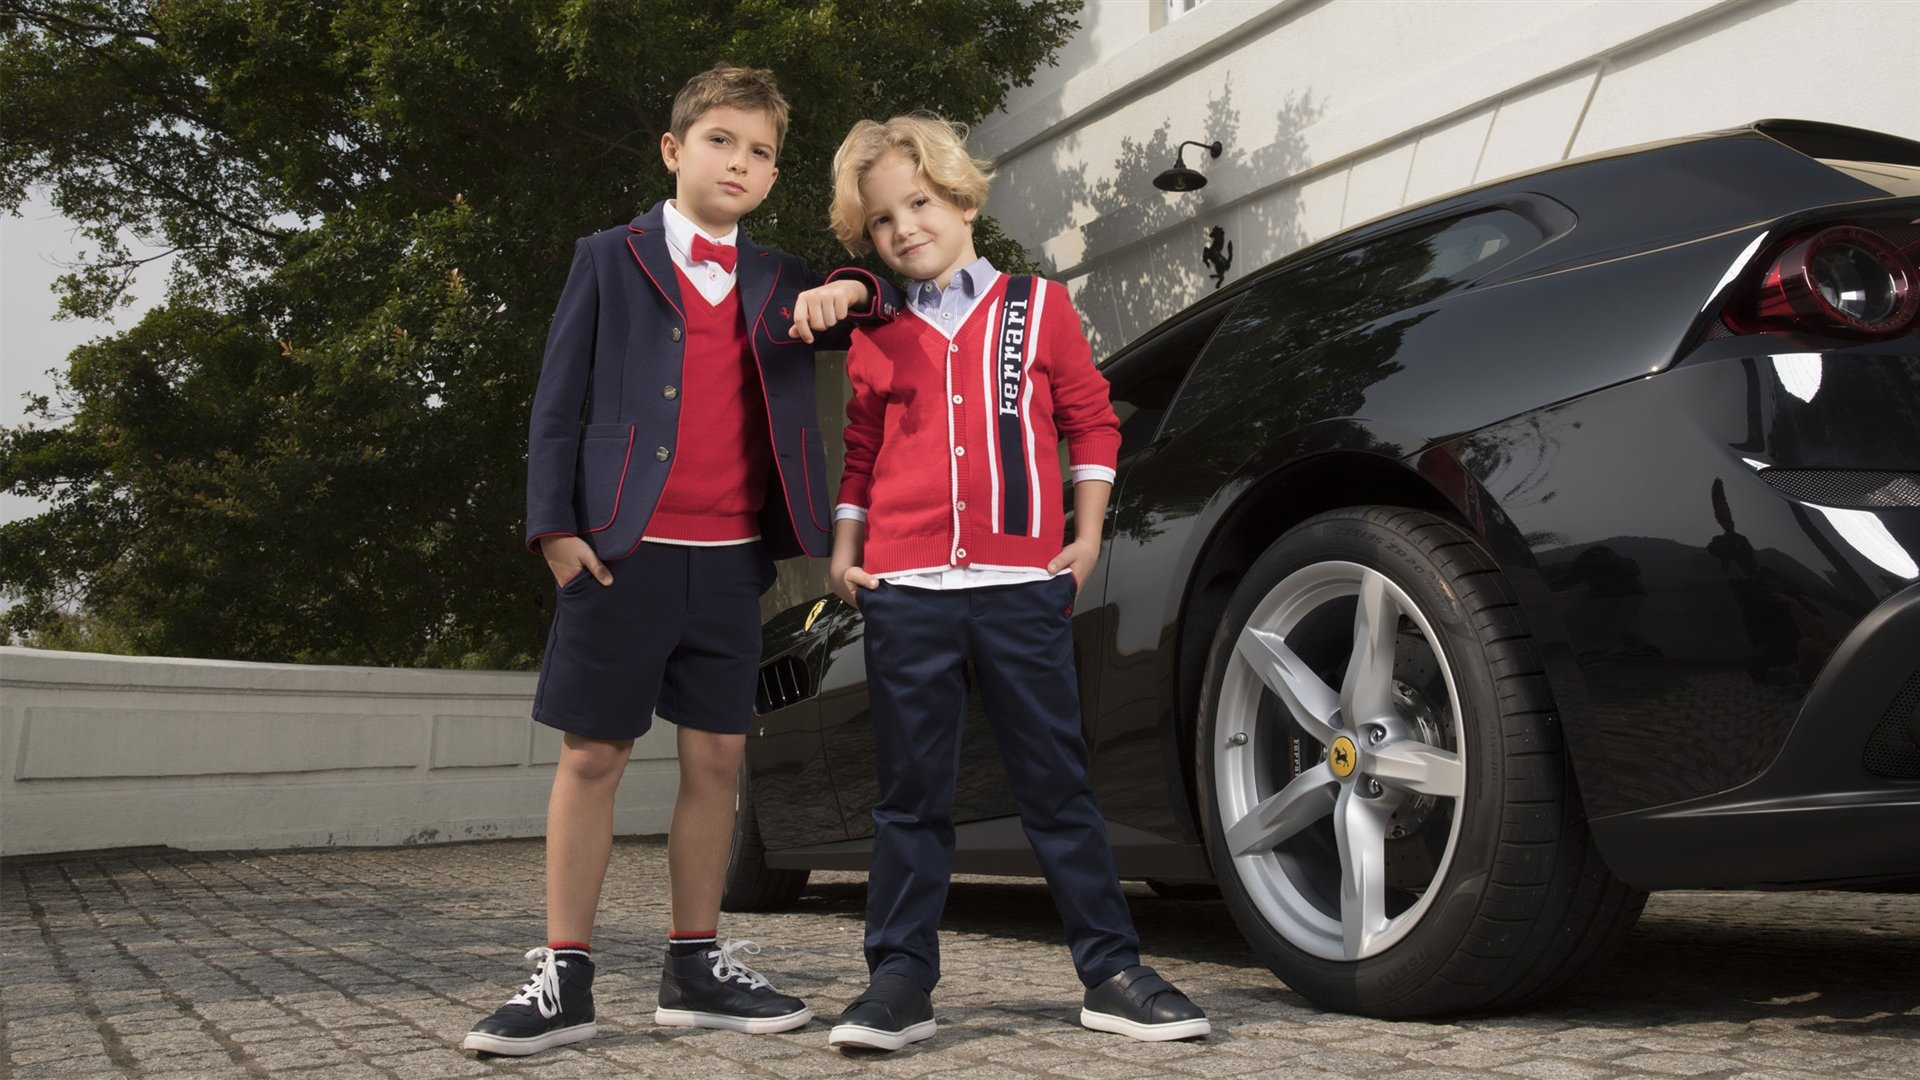 mclaren t clothes one s formula front set kids up and tee ferrari team category for polo kid product clothing shirts